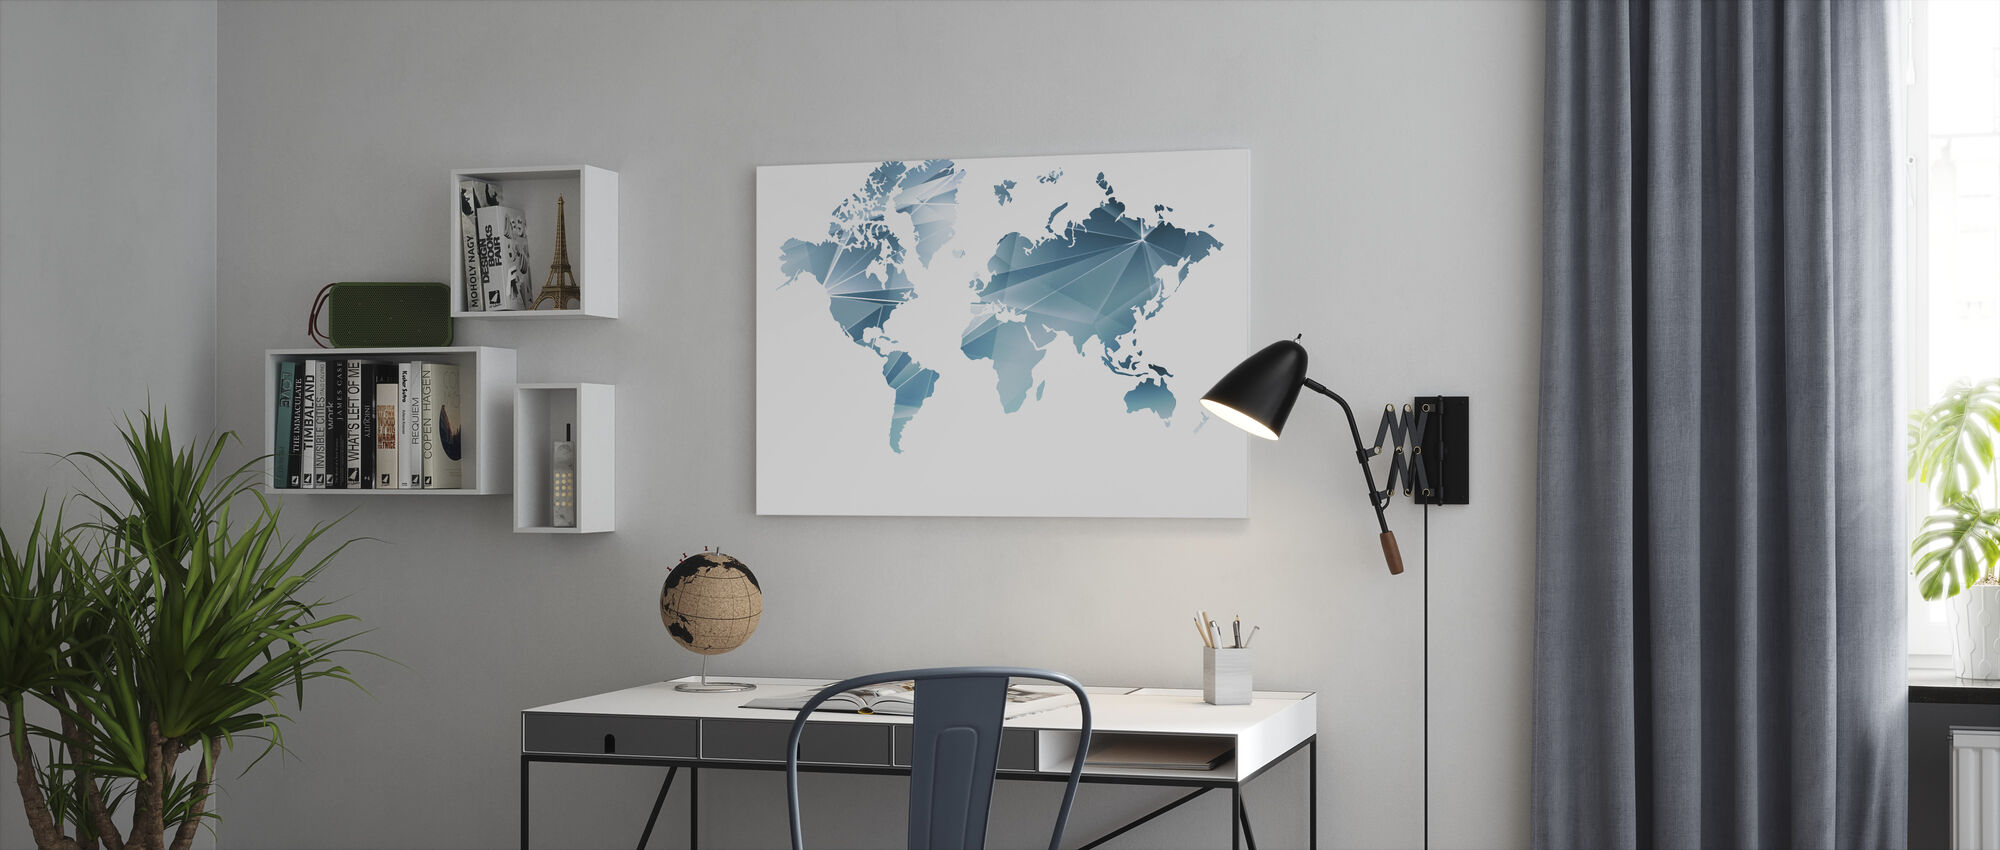 Geometric Concept World Map - Canvas print - Office